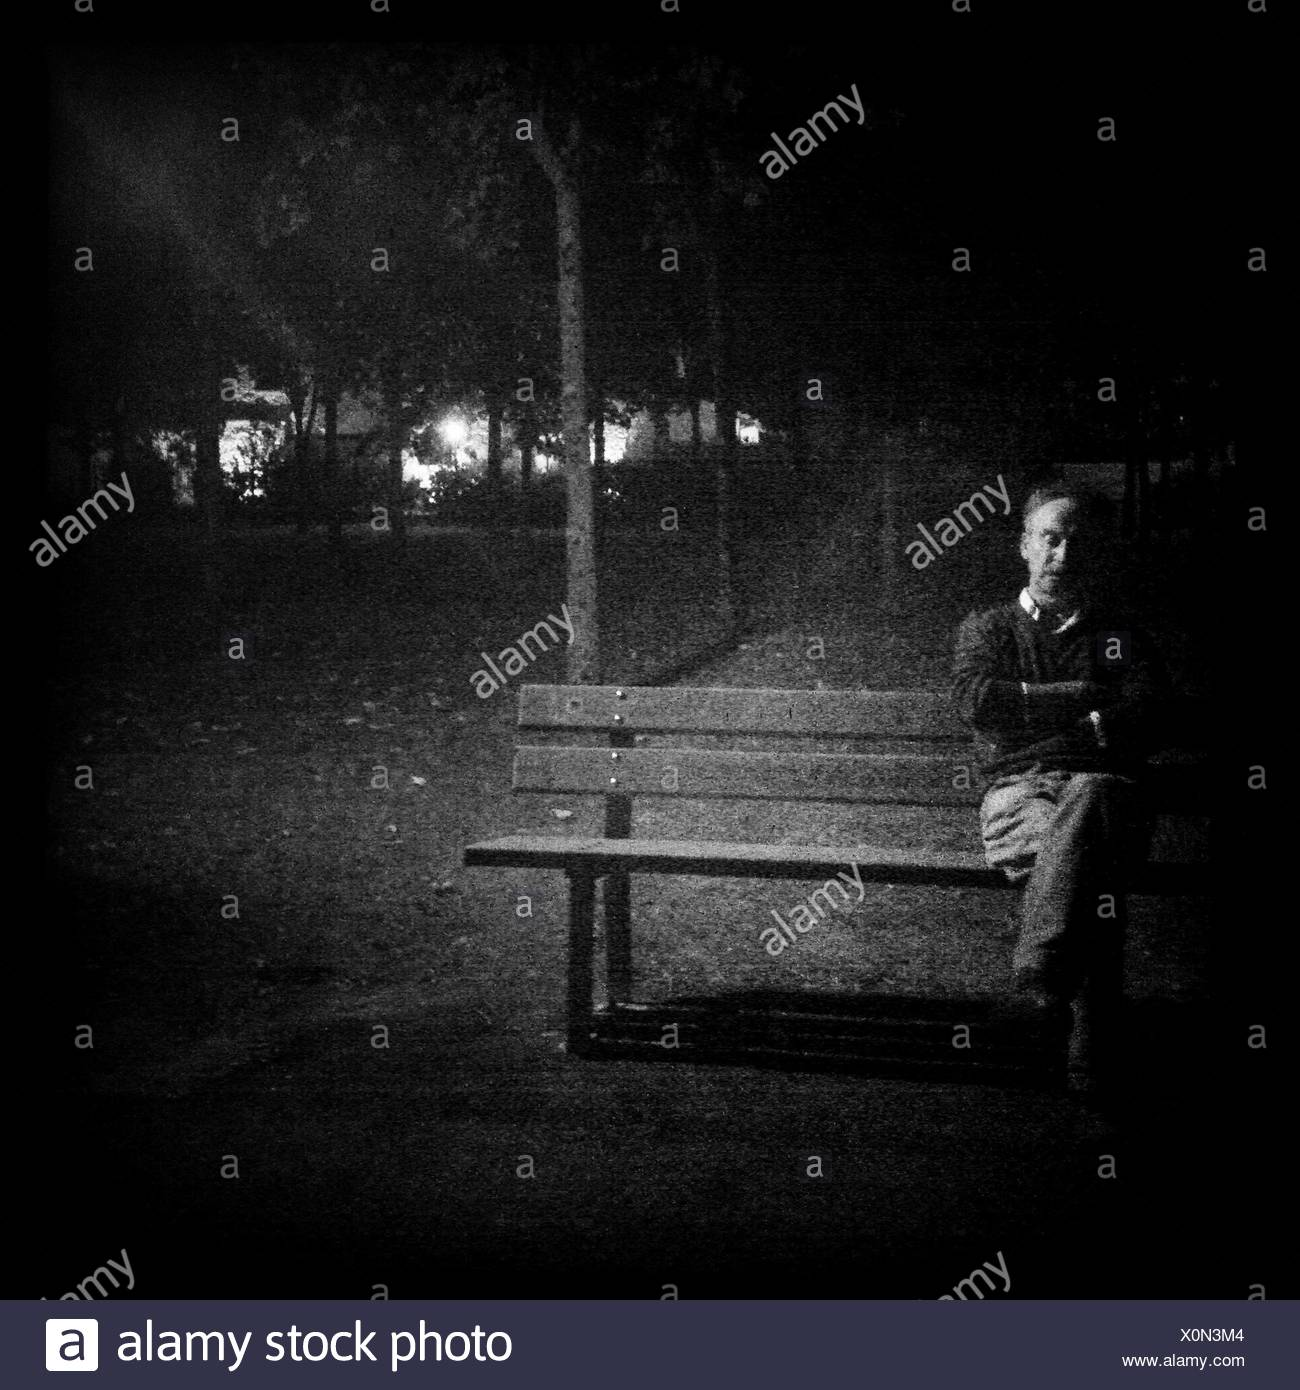 Portrait Of A Man Sitting On Park Bench At Night Stock Photo